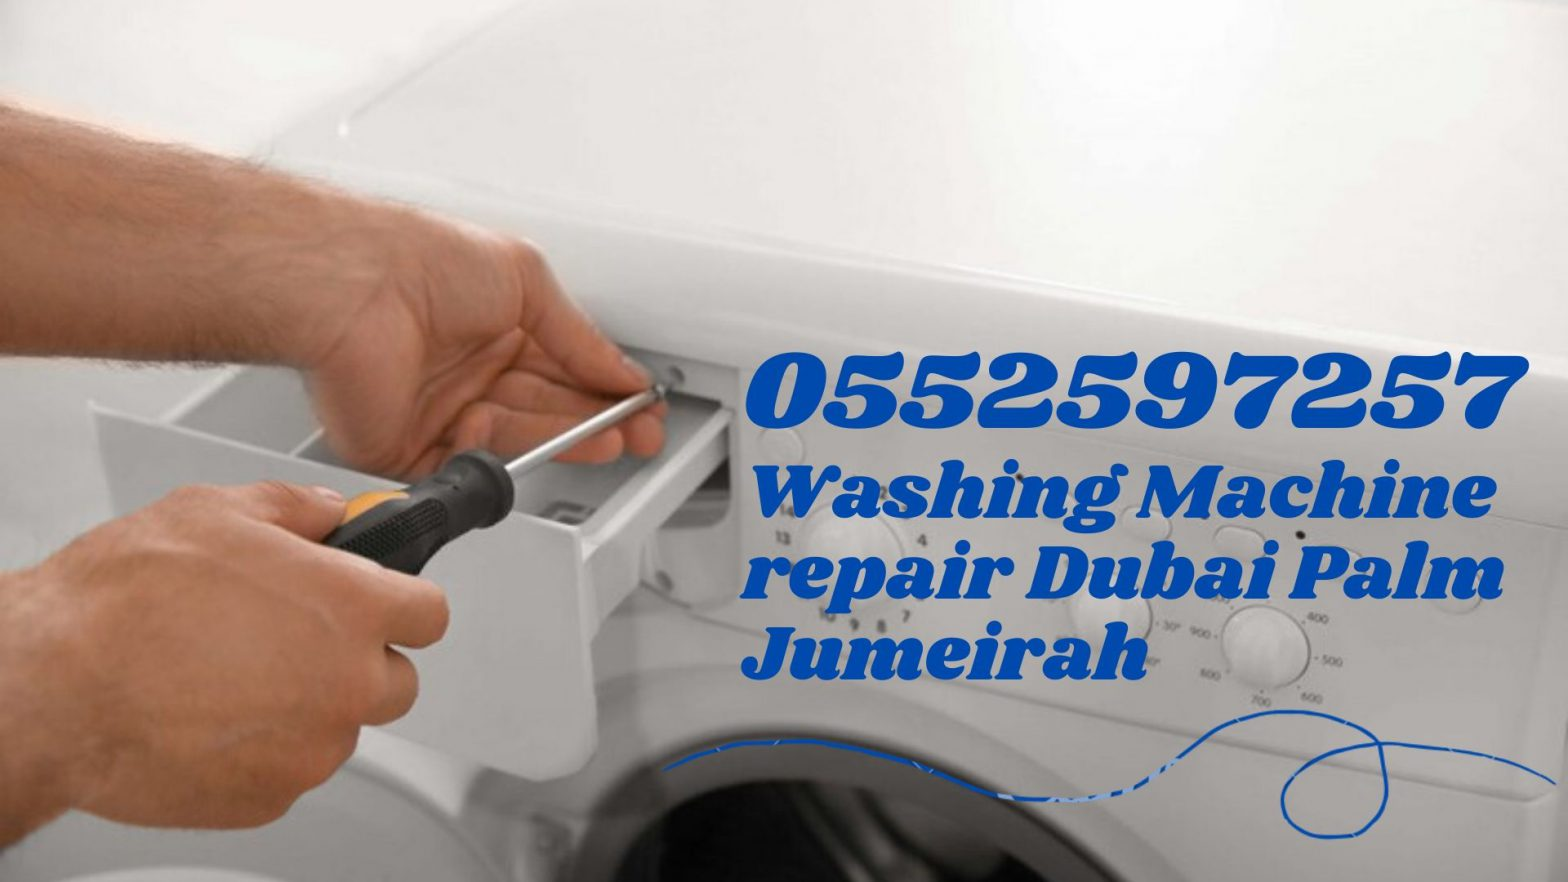 Washing machine repair Dubai Palm jumeirah